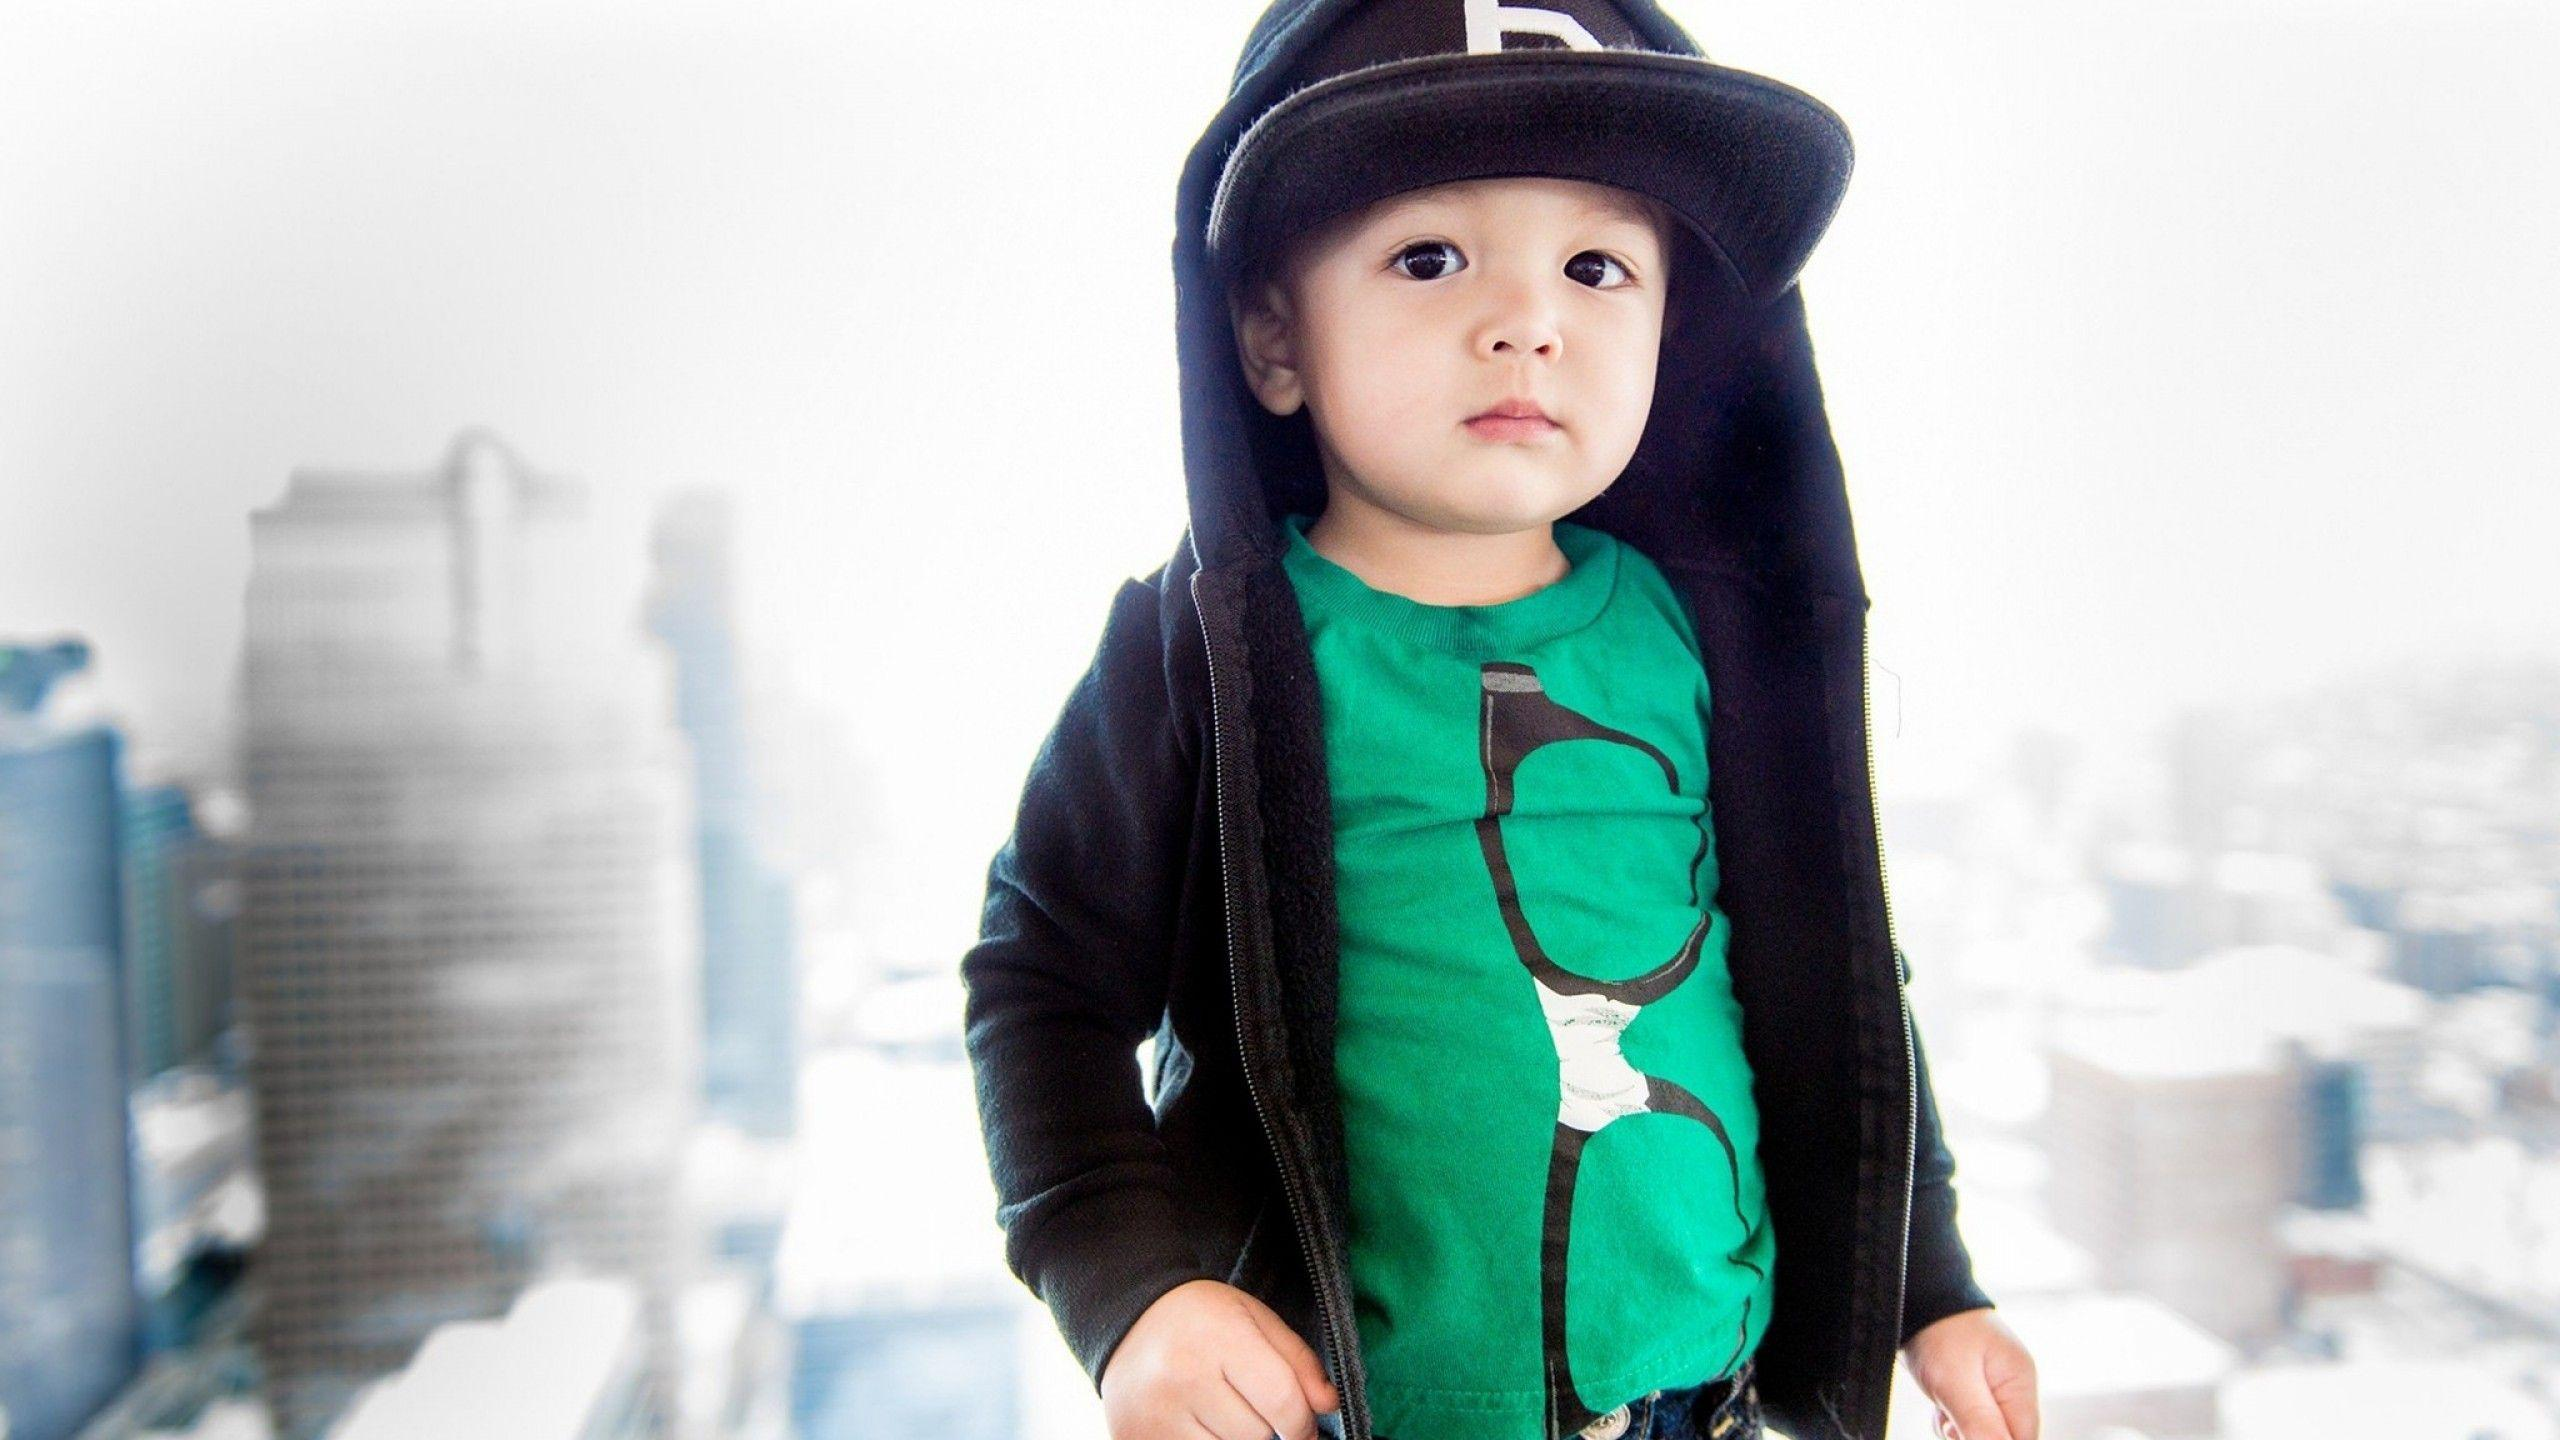 Stylish Child Boys Wallpapers Wallpaper Cave